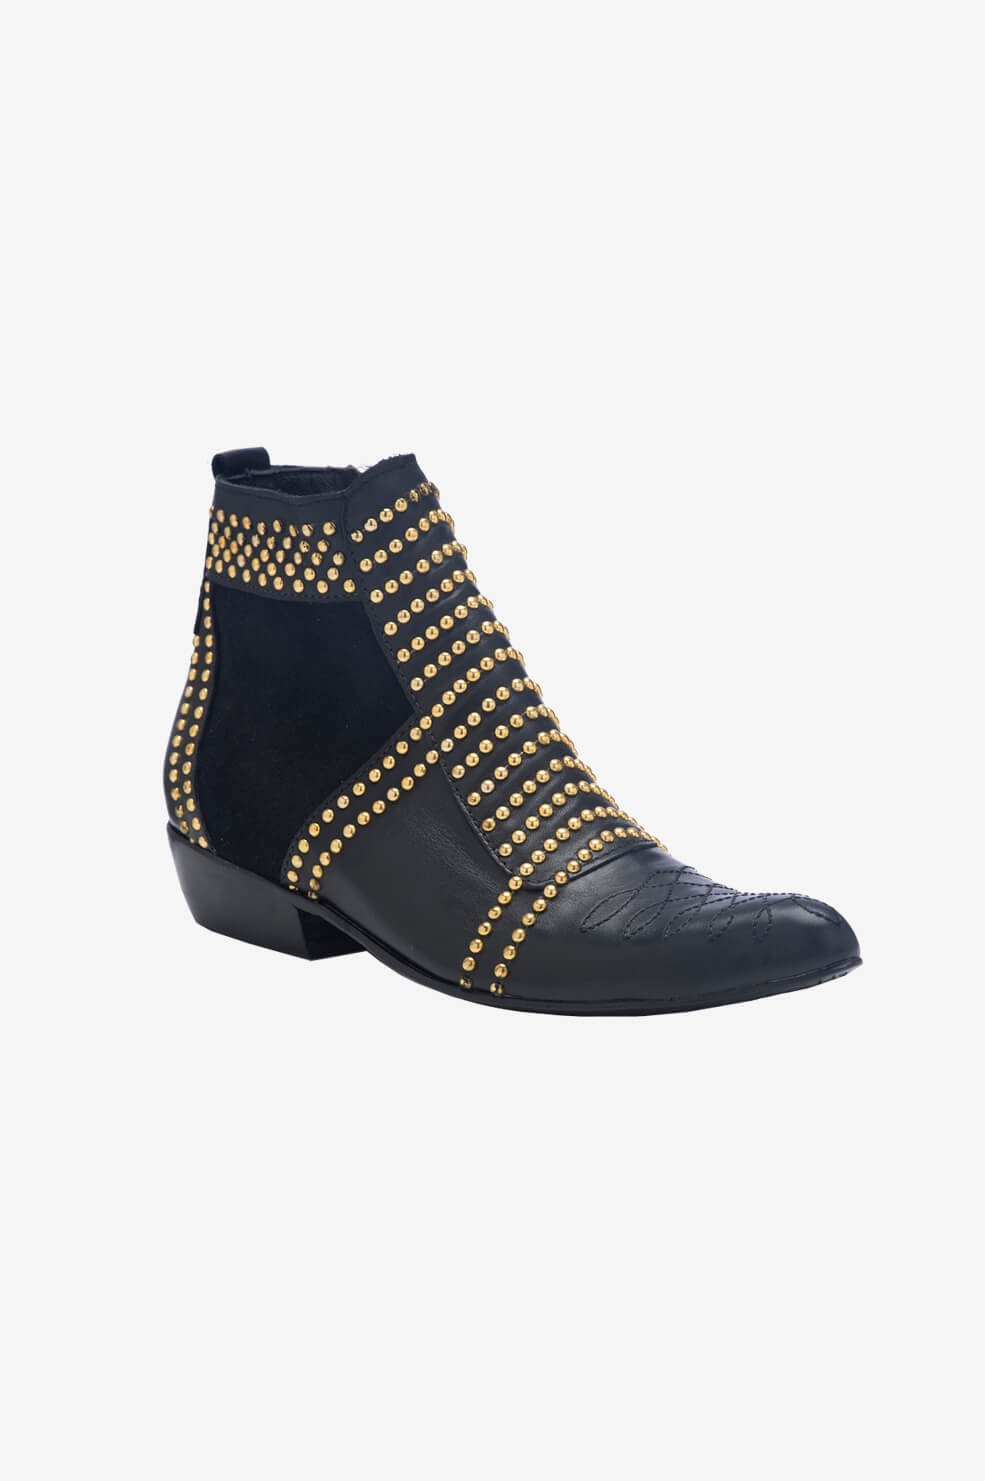 ANINE BING Charlie boots in gold